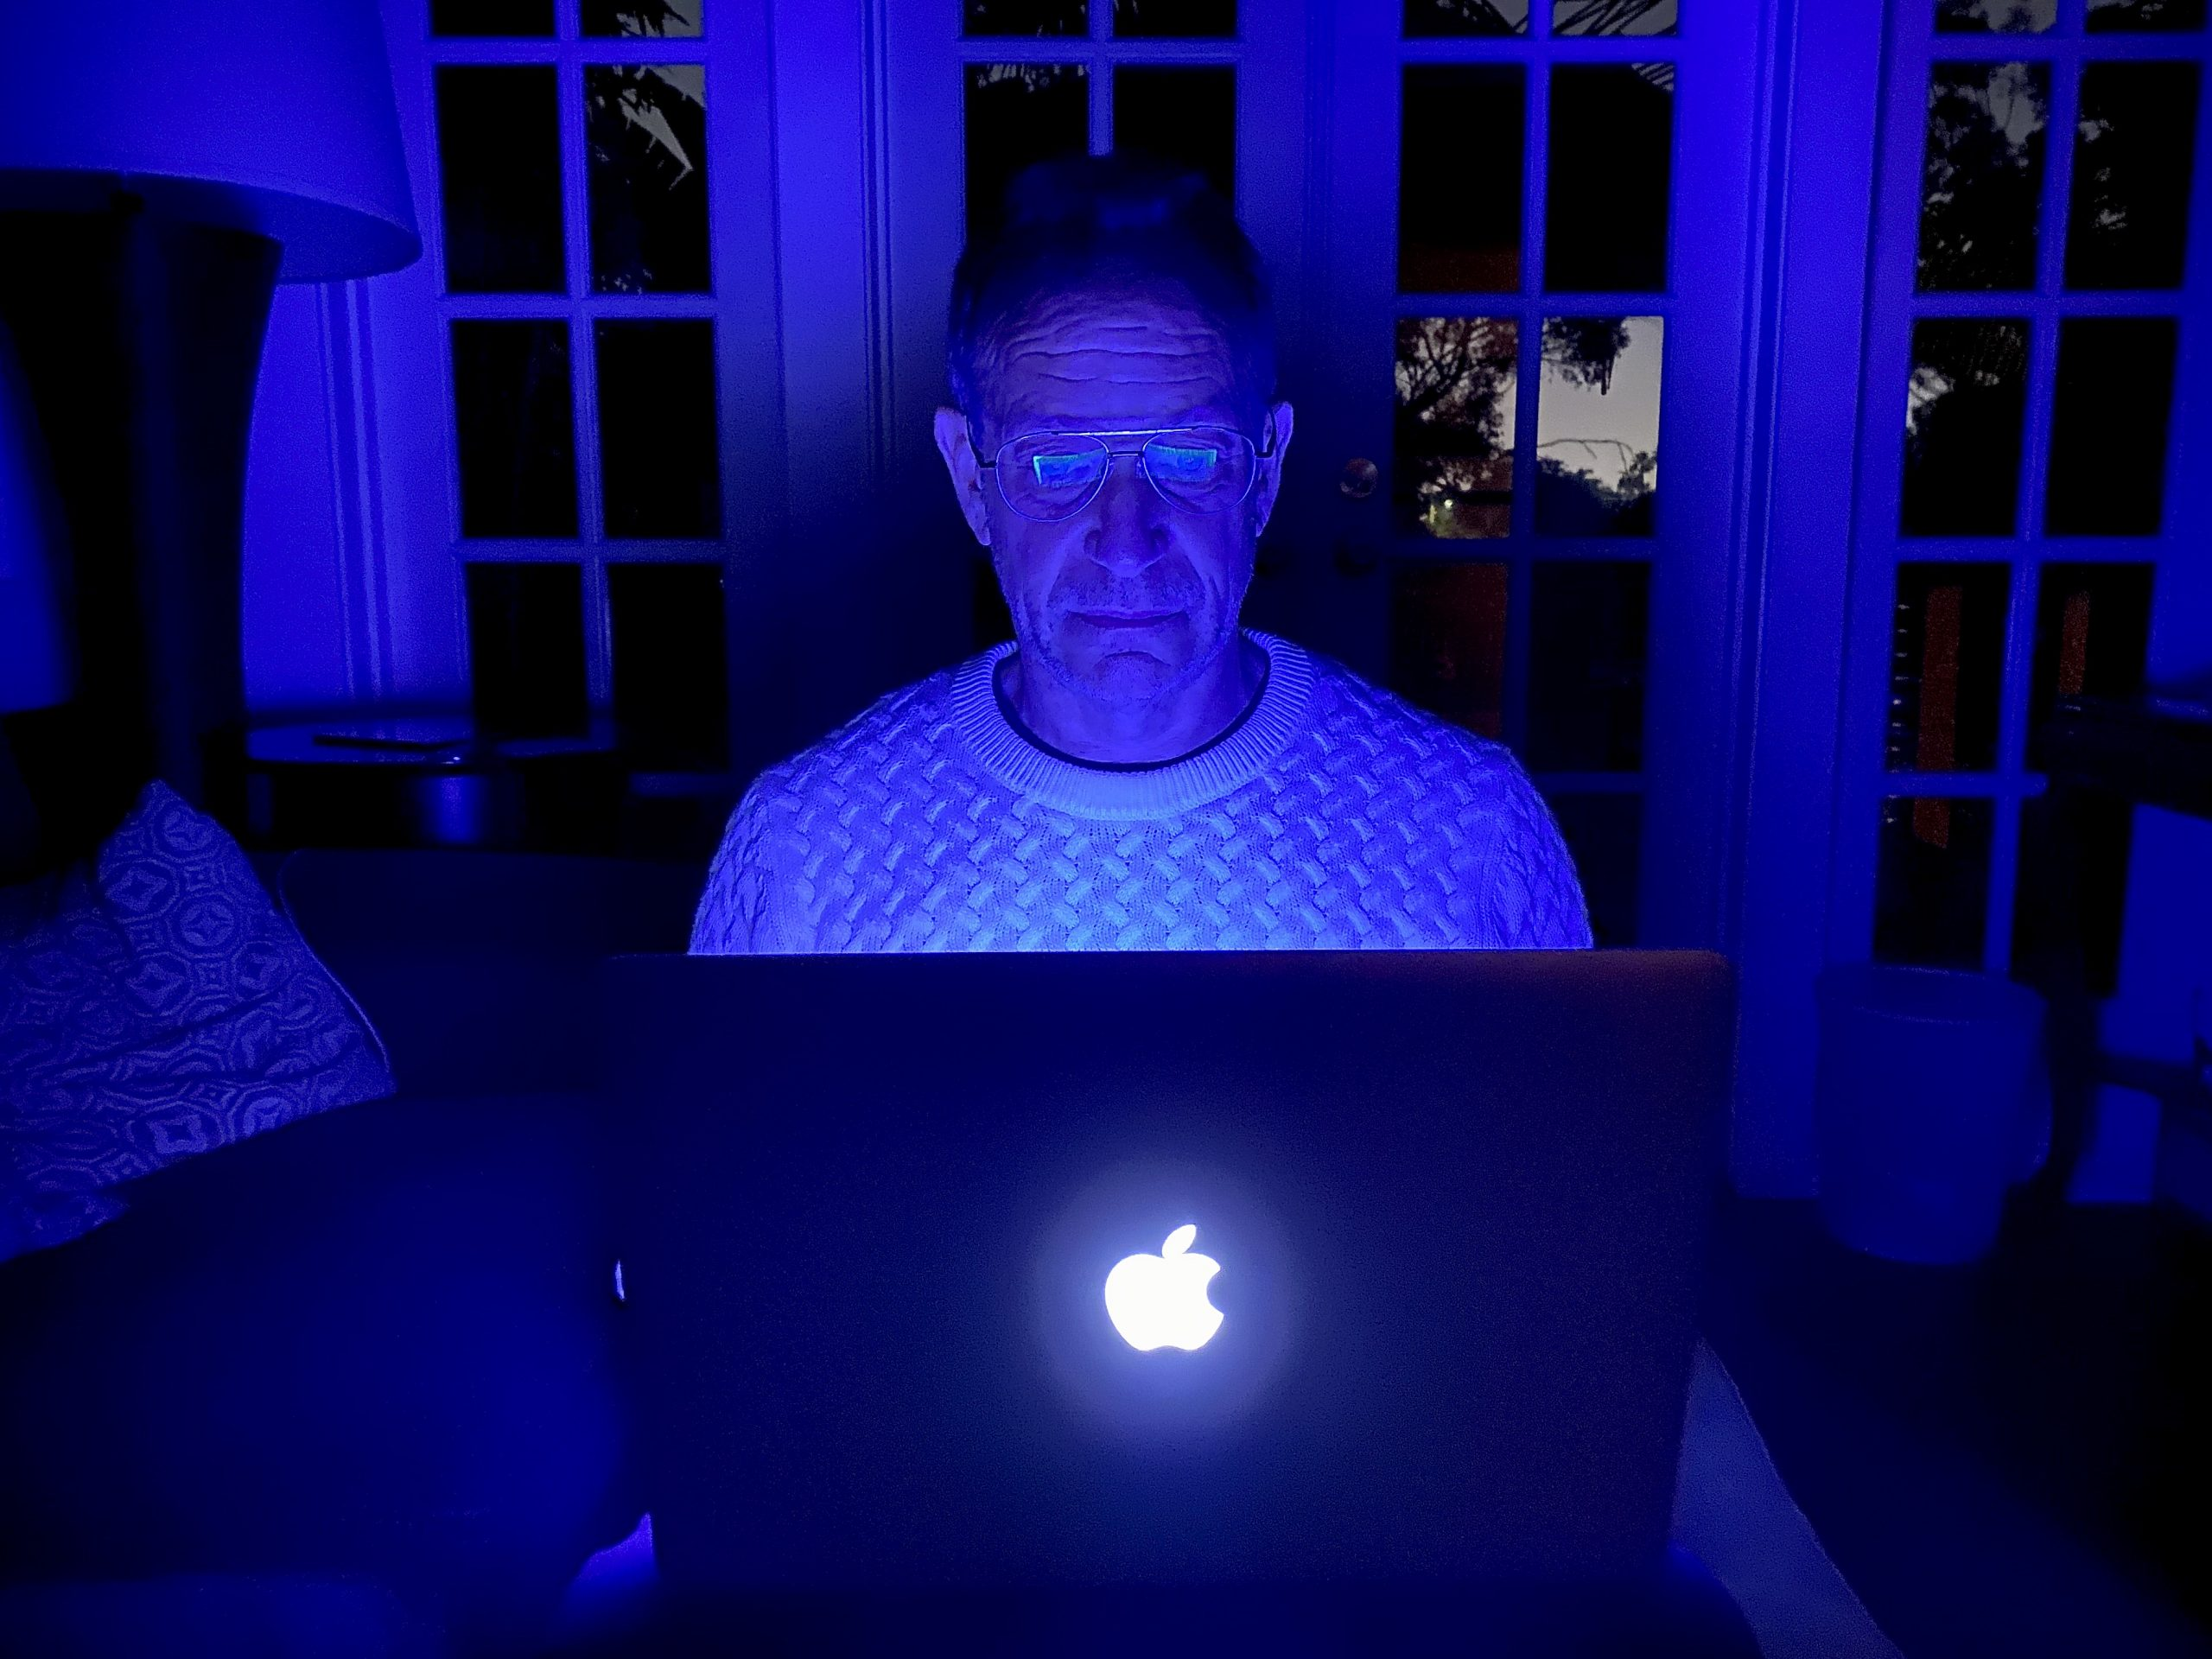 Man staring at laptop computer in blue light with Fashionable Zenni Blokz lenses in an aviator style.